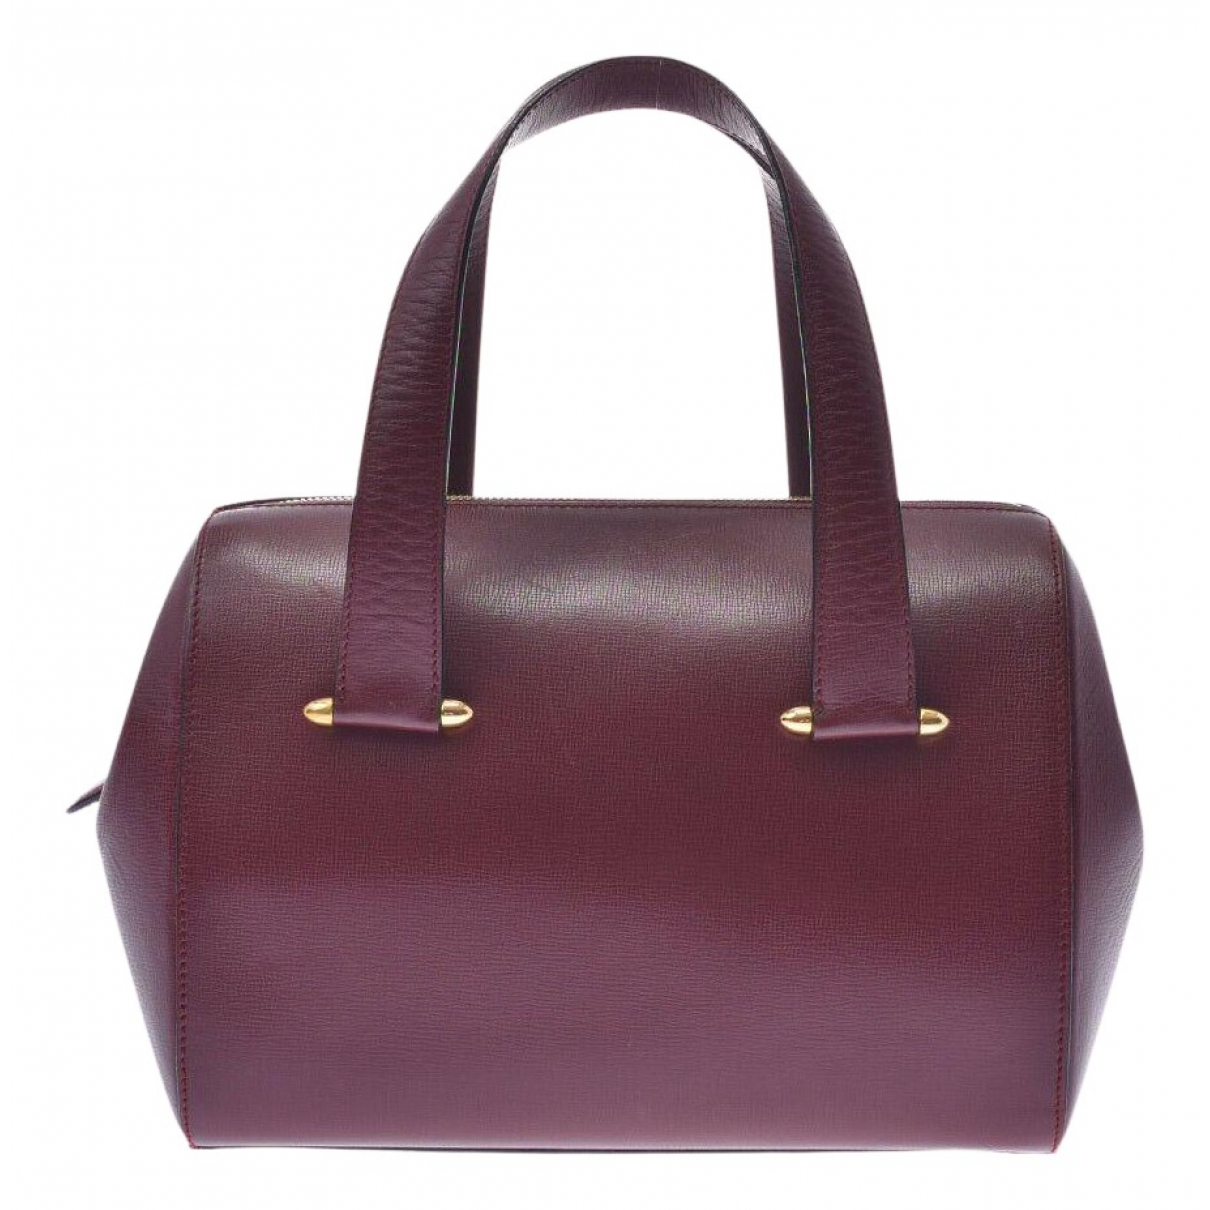 Cartier N Burgundy Leather handbag for Women N